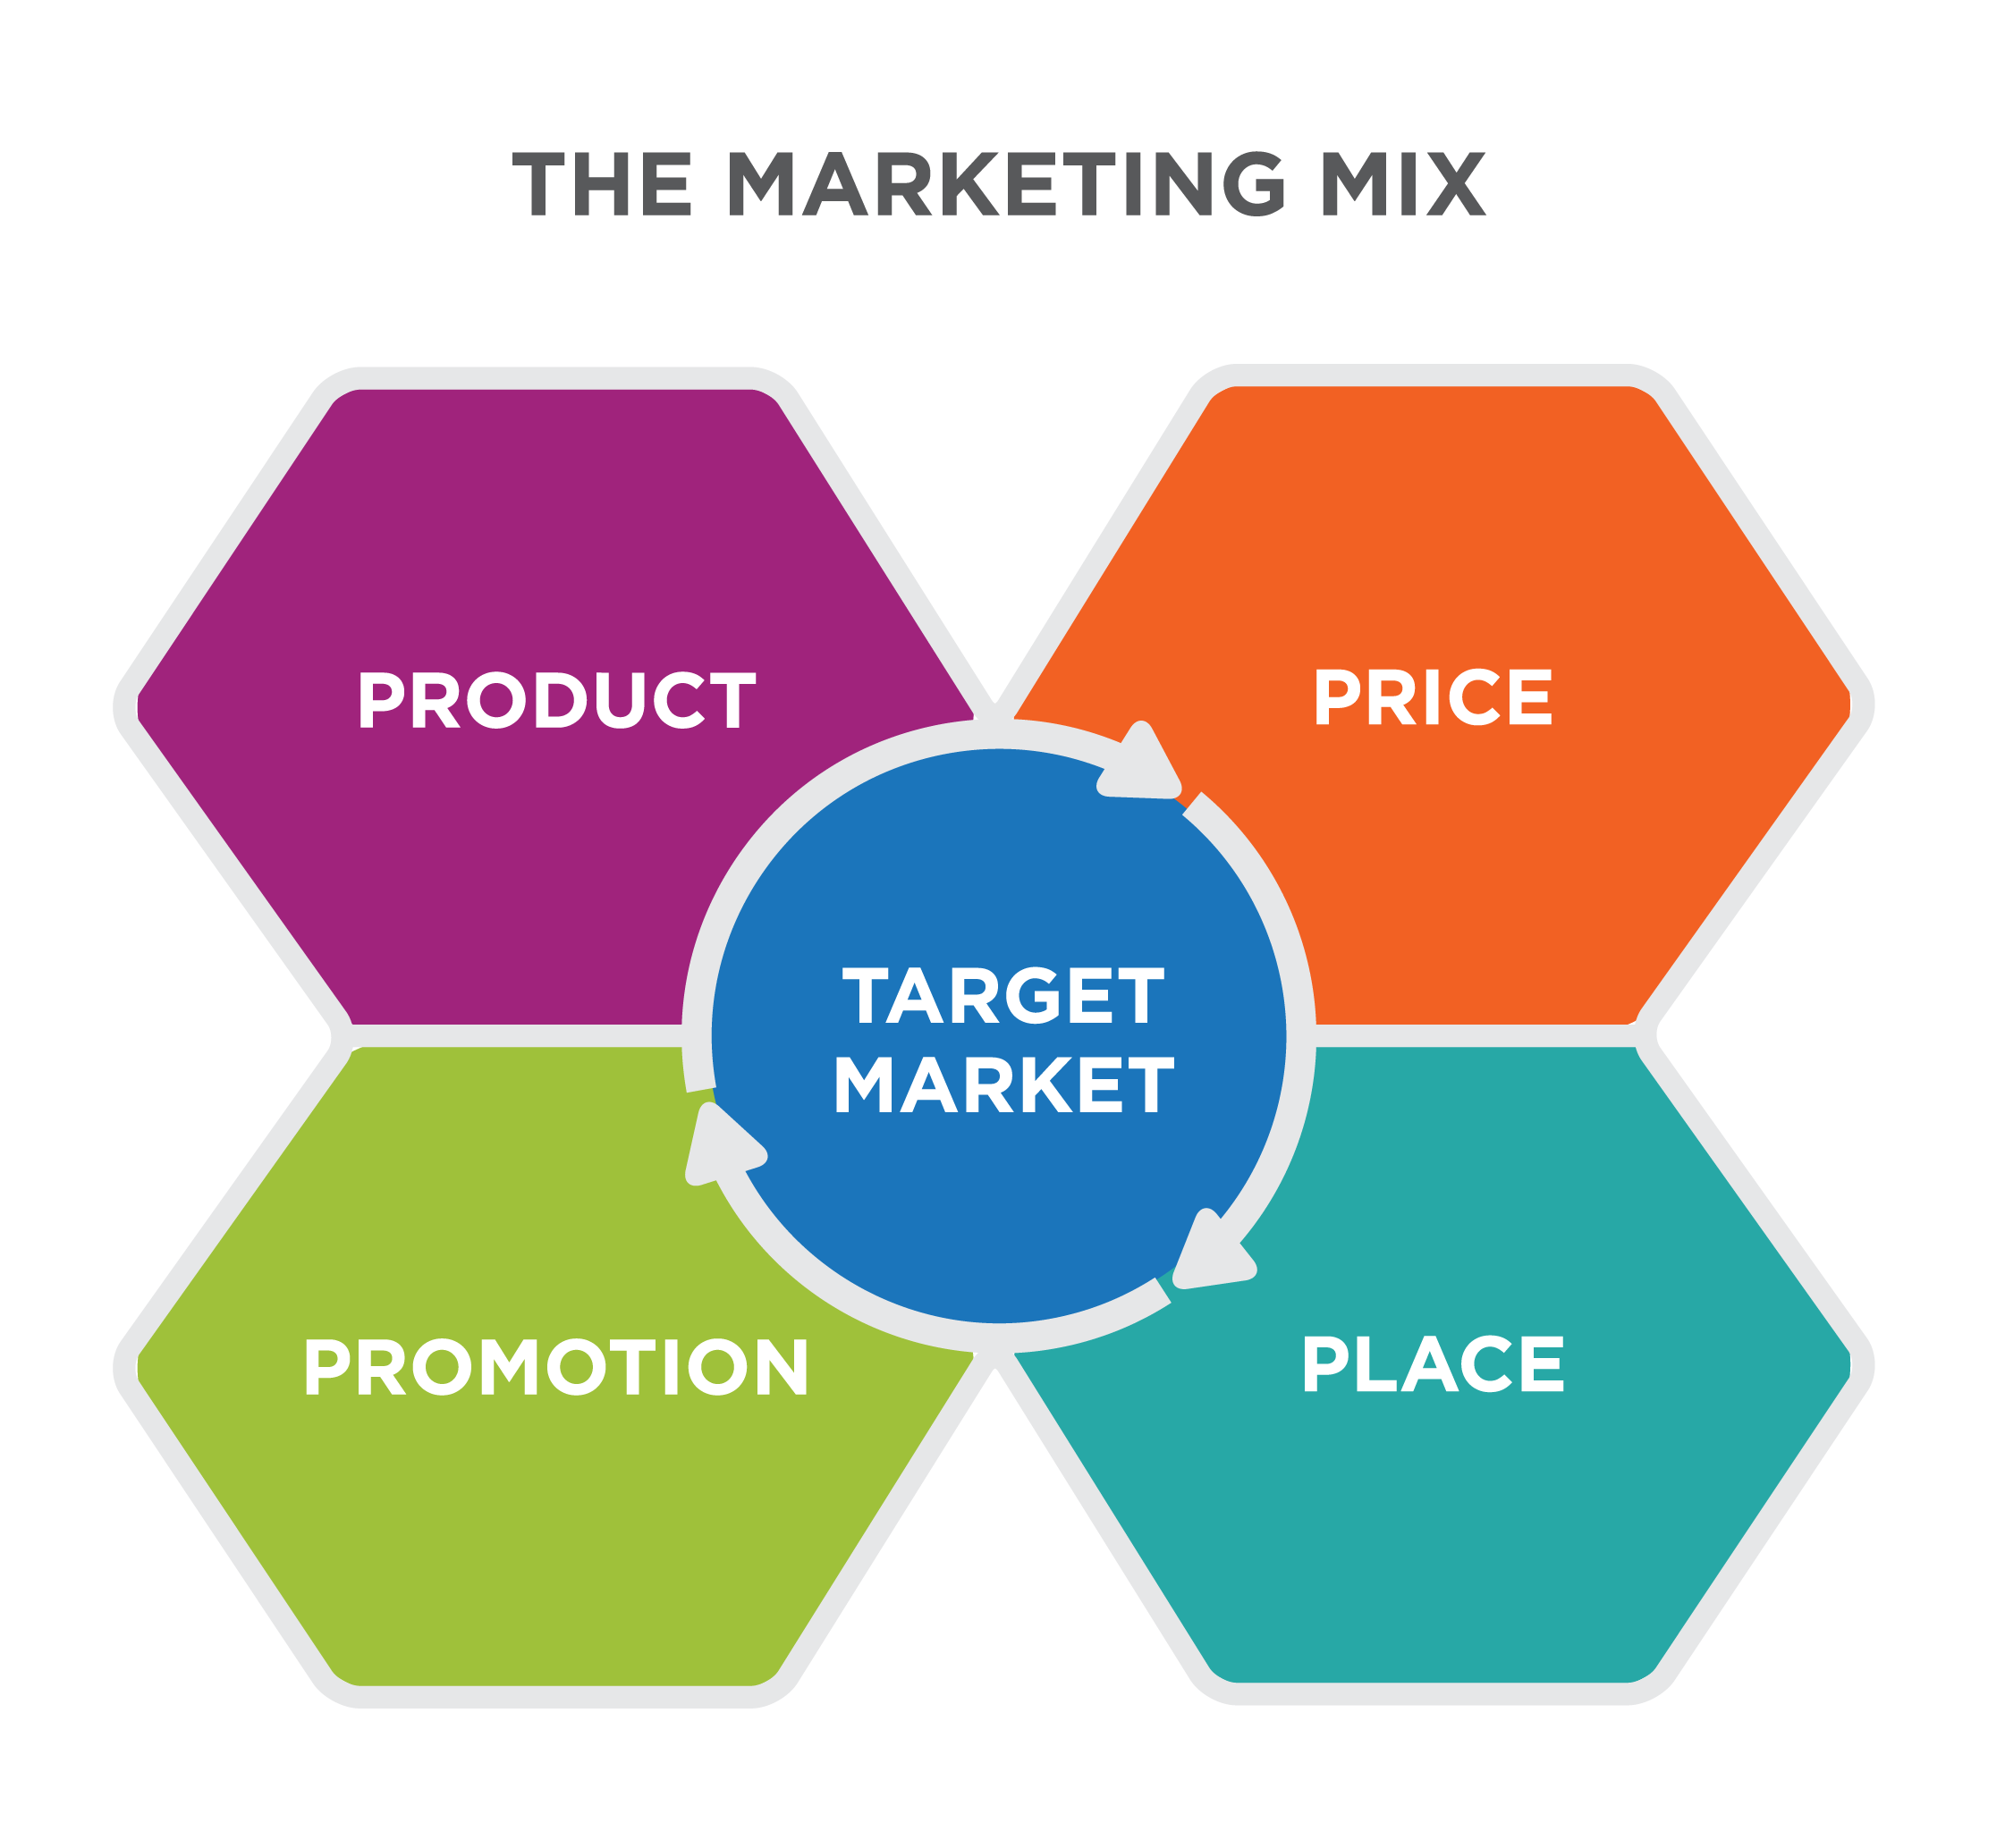 marketing positioning and communication strategy Developing an effective positioning strategy by definition, positioning is the process by which a brand (a product or service) is marketed with the goal of owning a meaningful and differentiated idea in the mind of the customer.